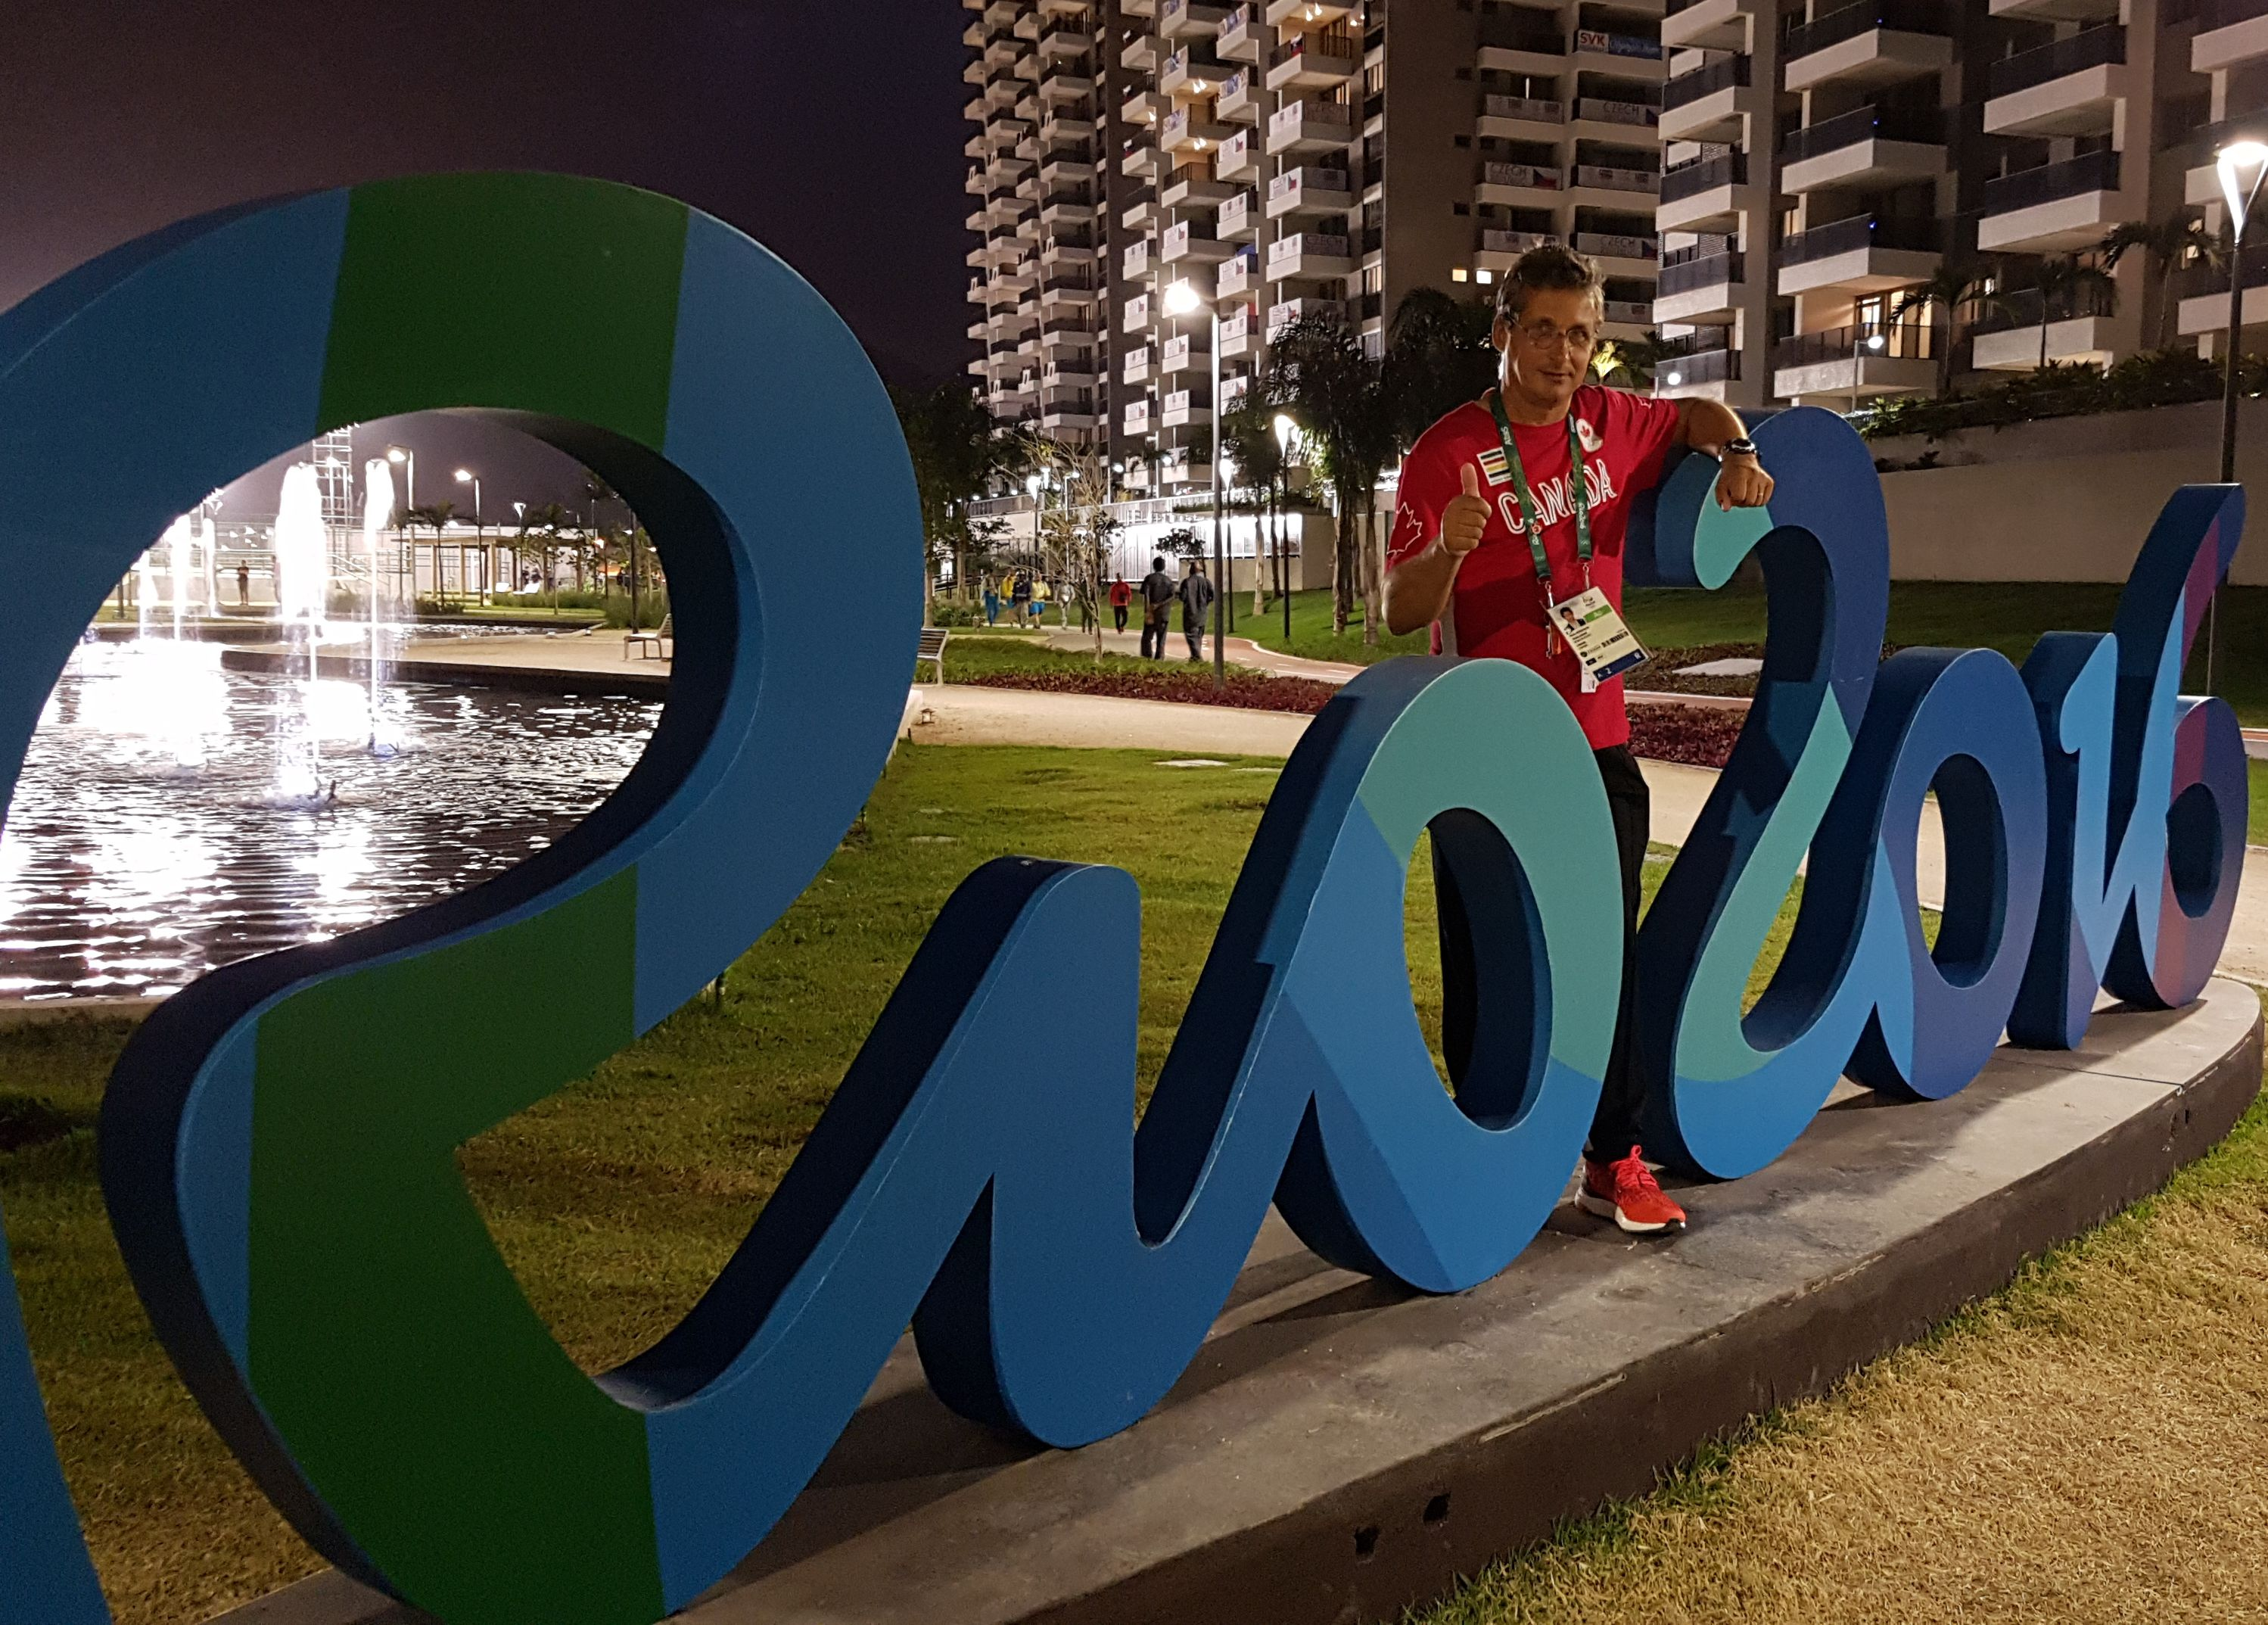 2016, Rio Olympic Games